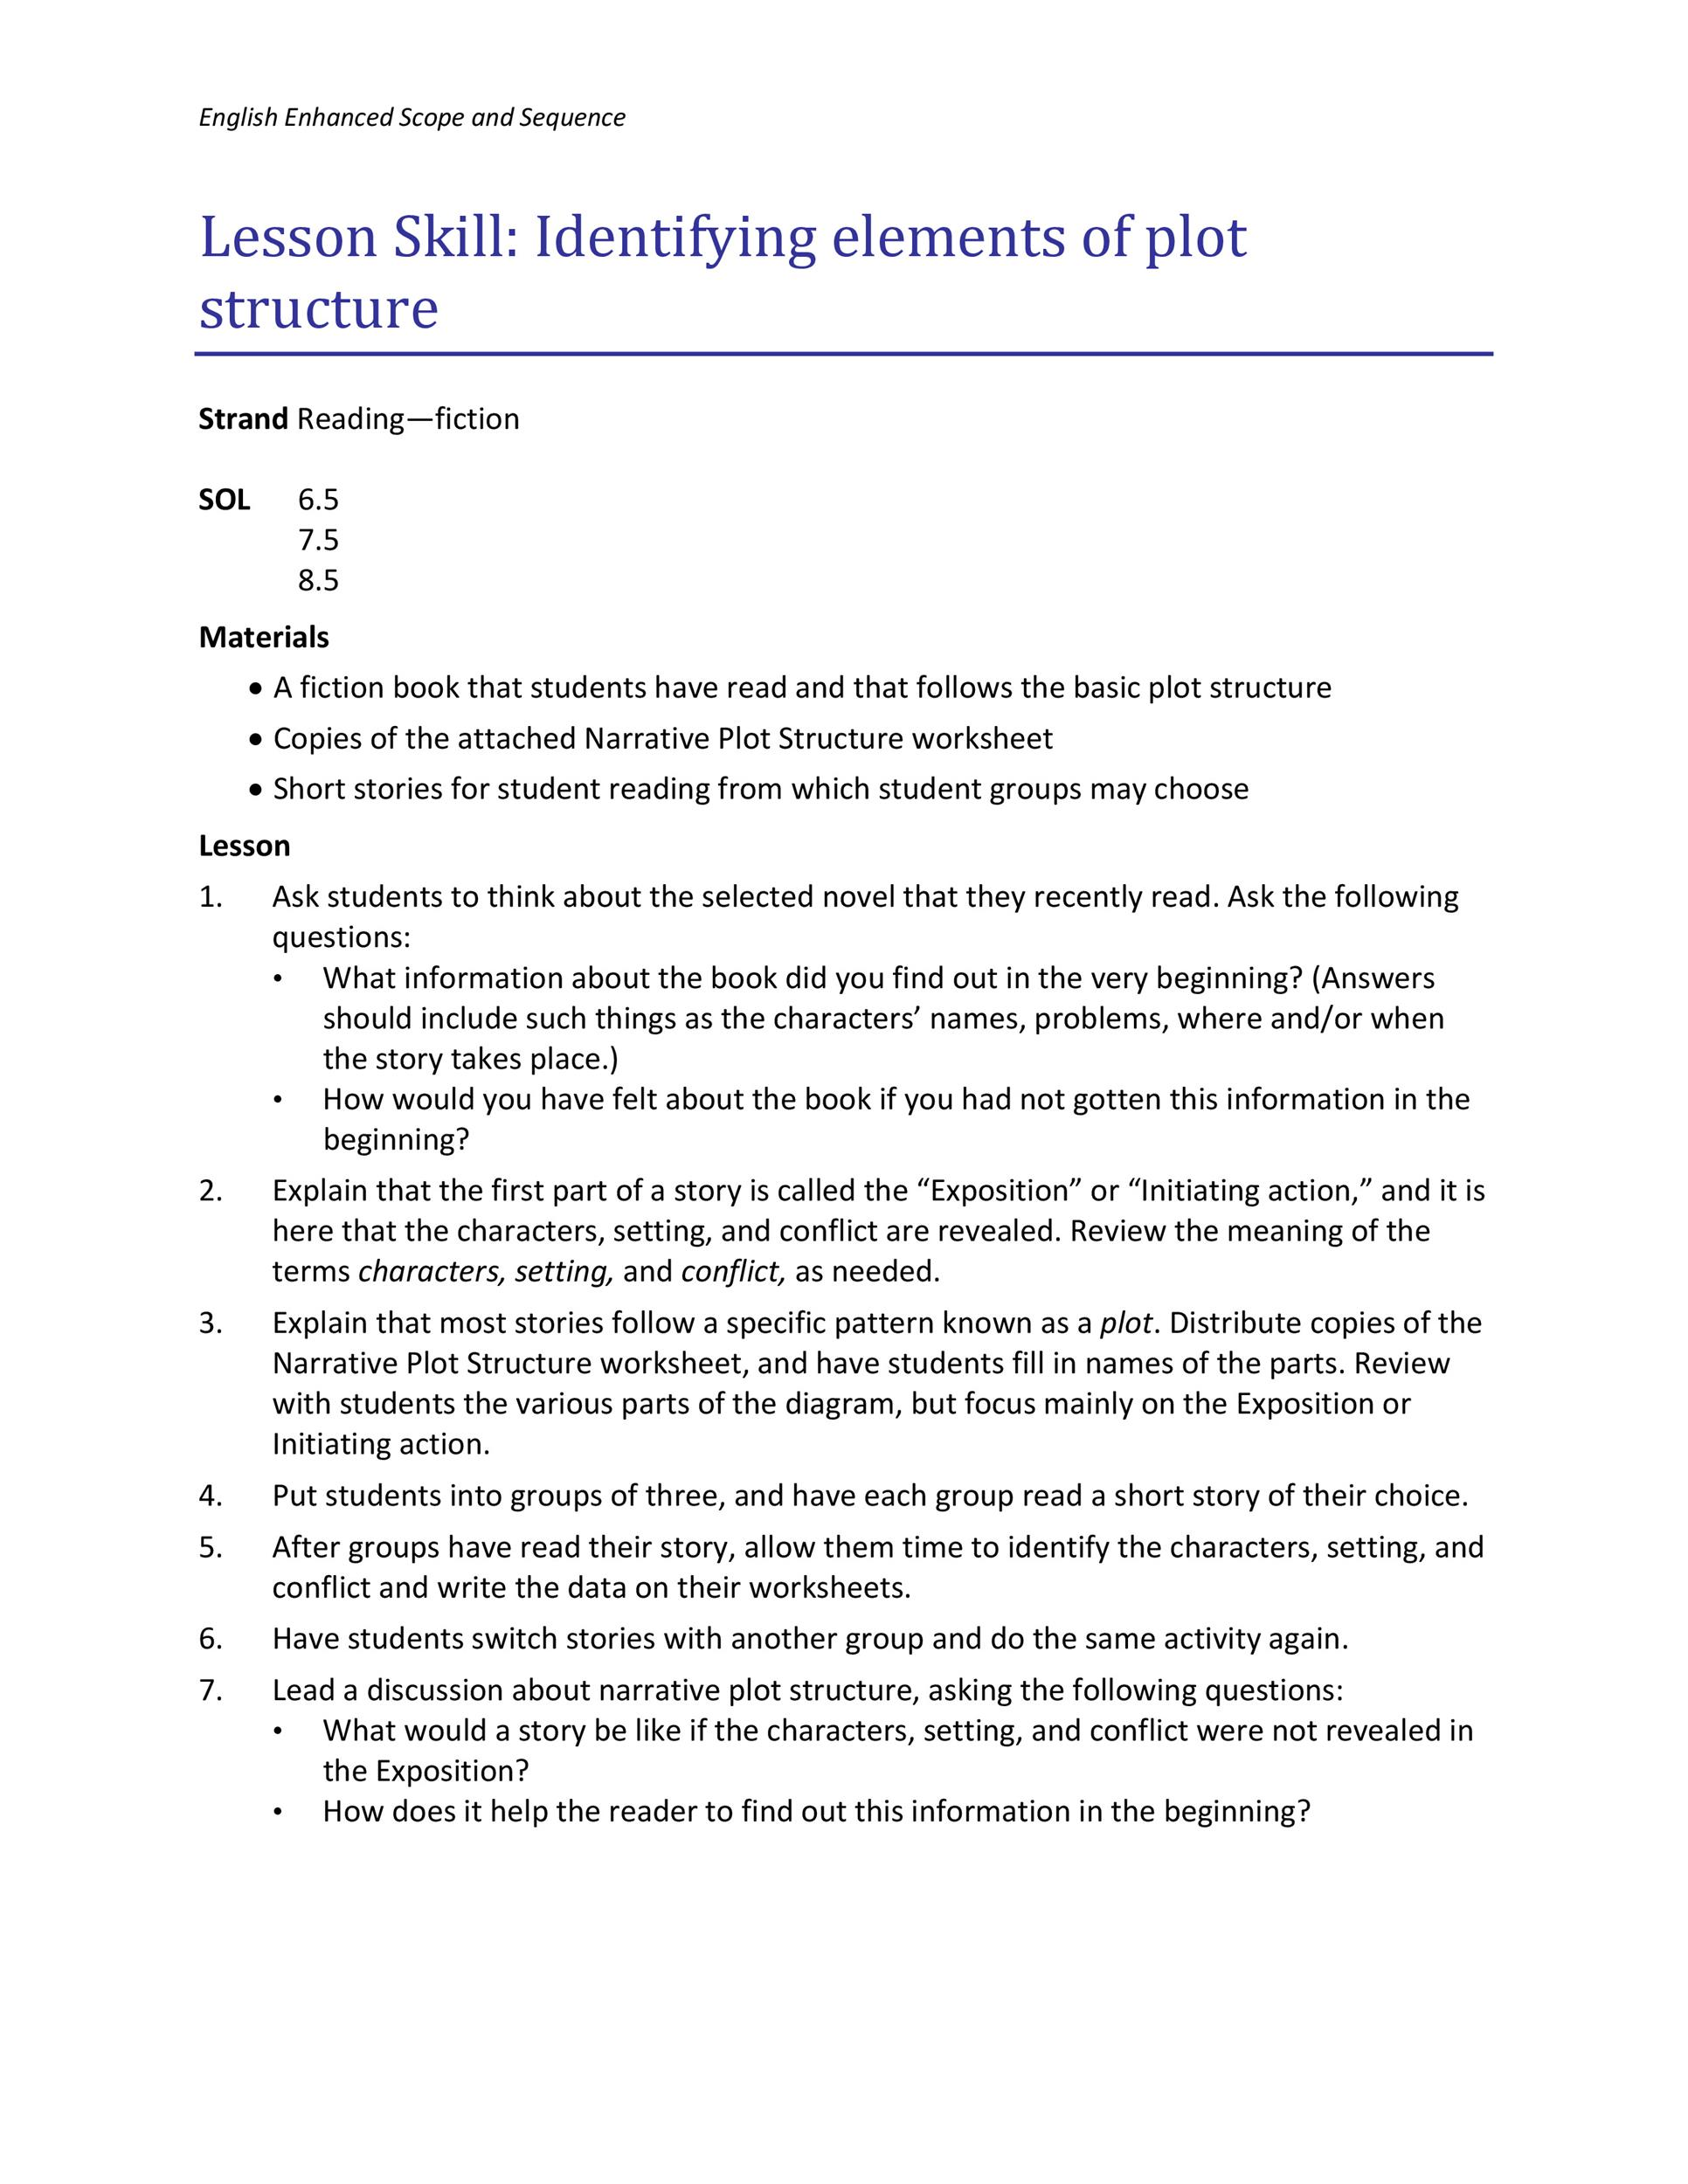 Plot Diagram Template 12 45 professional plot diagram templates (plot pyramid) template lab